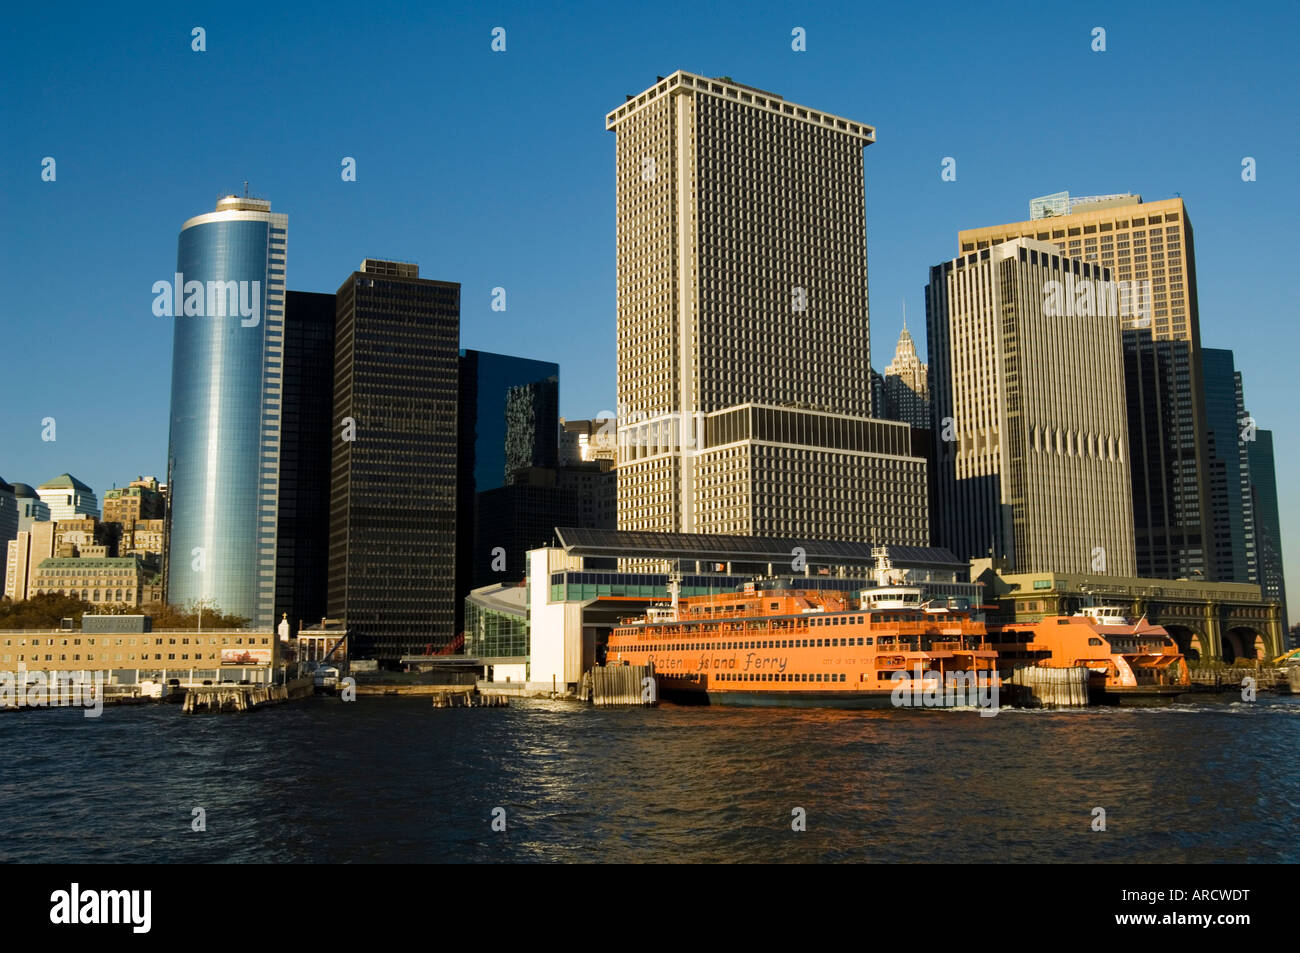 Staten Island Ferry, quartier des affaires, le Lower Manhattan, New York City, New York, États-Unis d'Amérique, Photo Stock